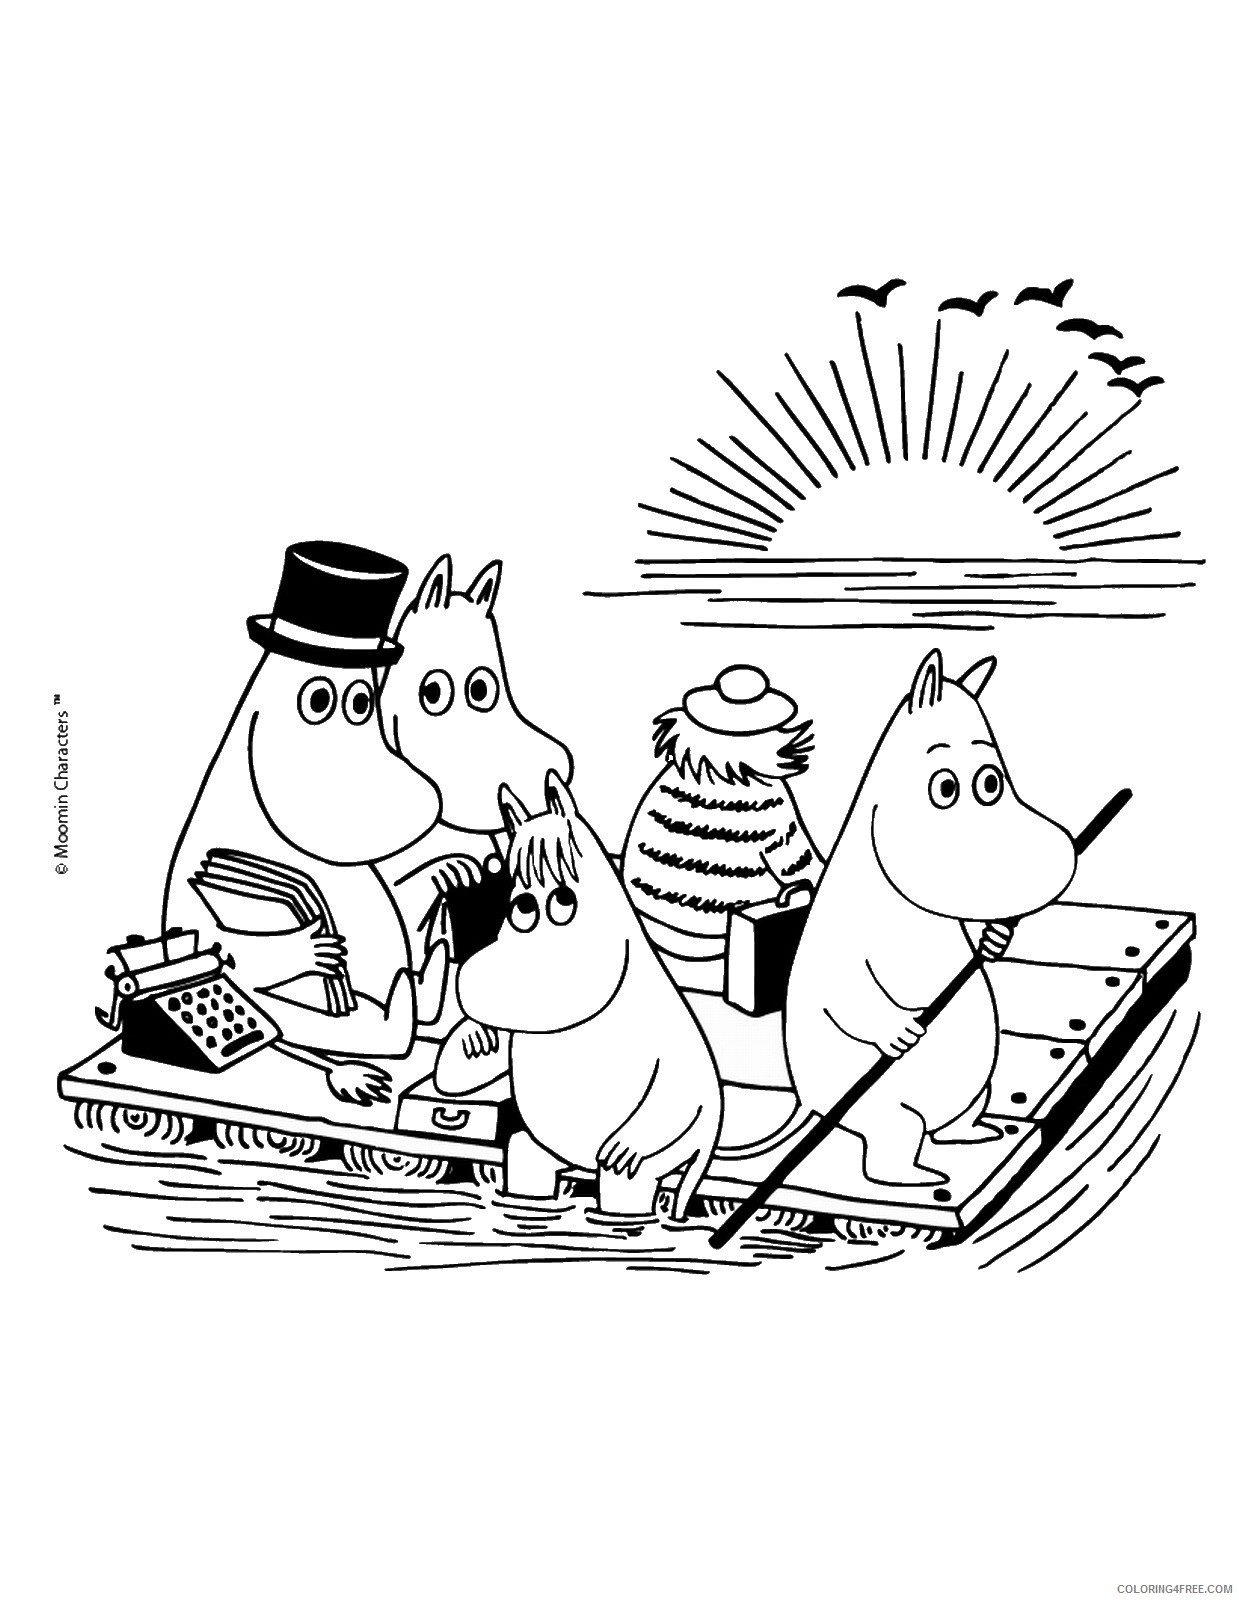 The Moomins Coloring Pages Cartoons moomins_cl_15 Printable 2020 6495 Coloring4free